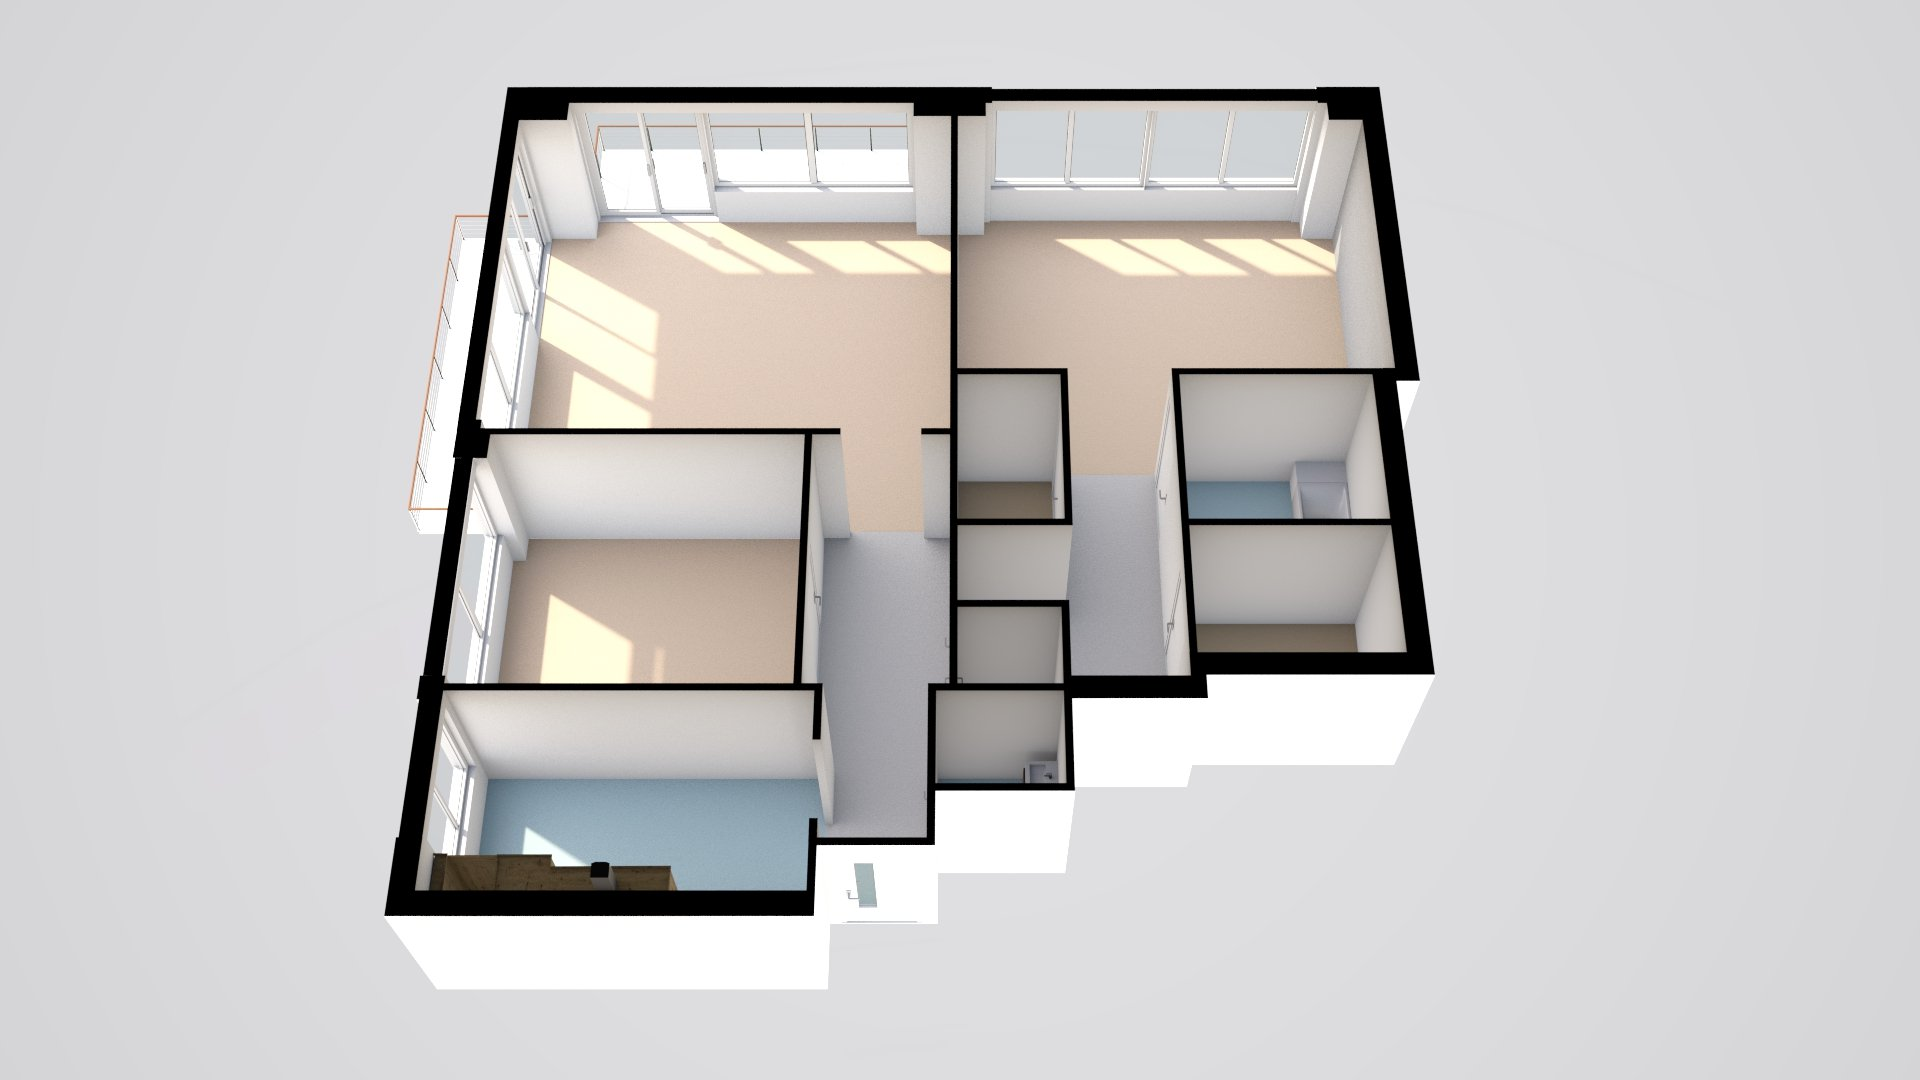 Floorplanner-NYC-apartment-3d-floorplan-tilted-with-sun